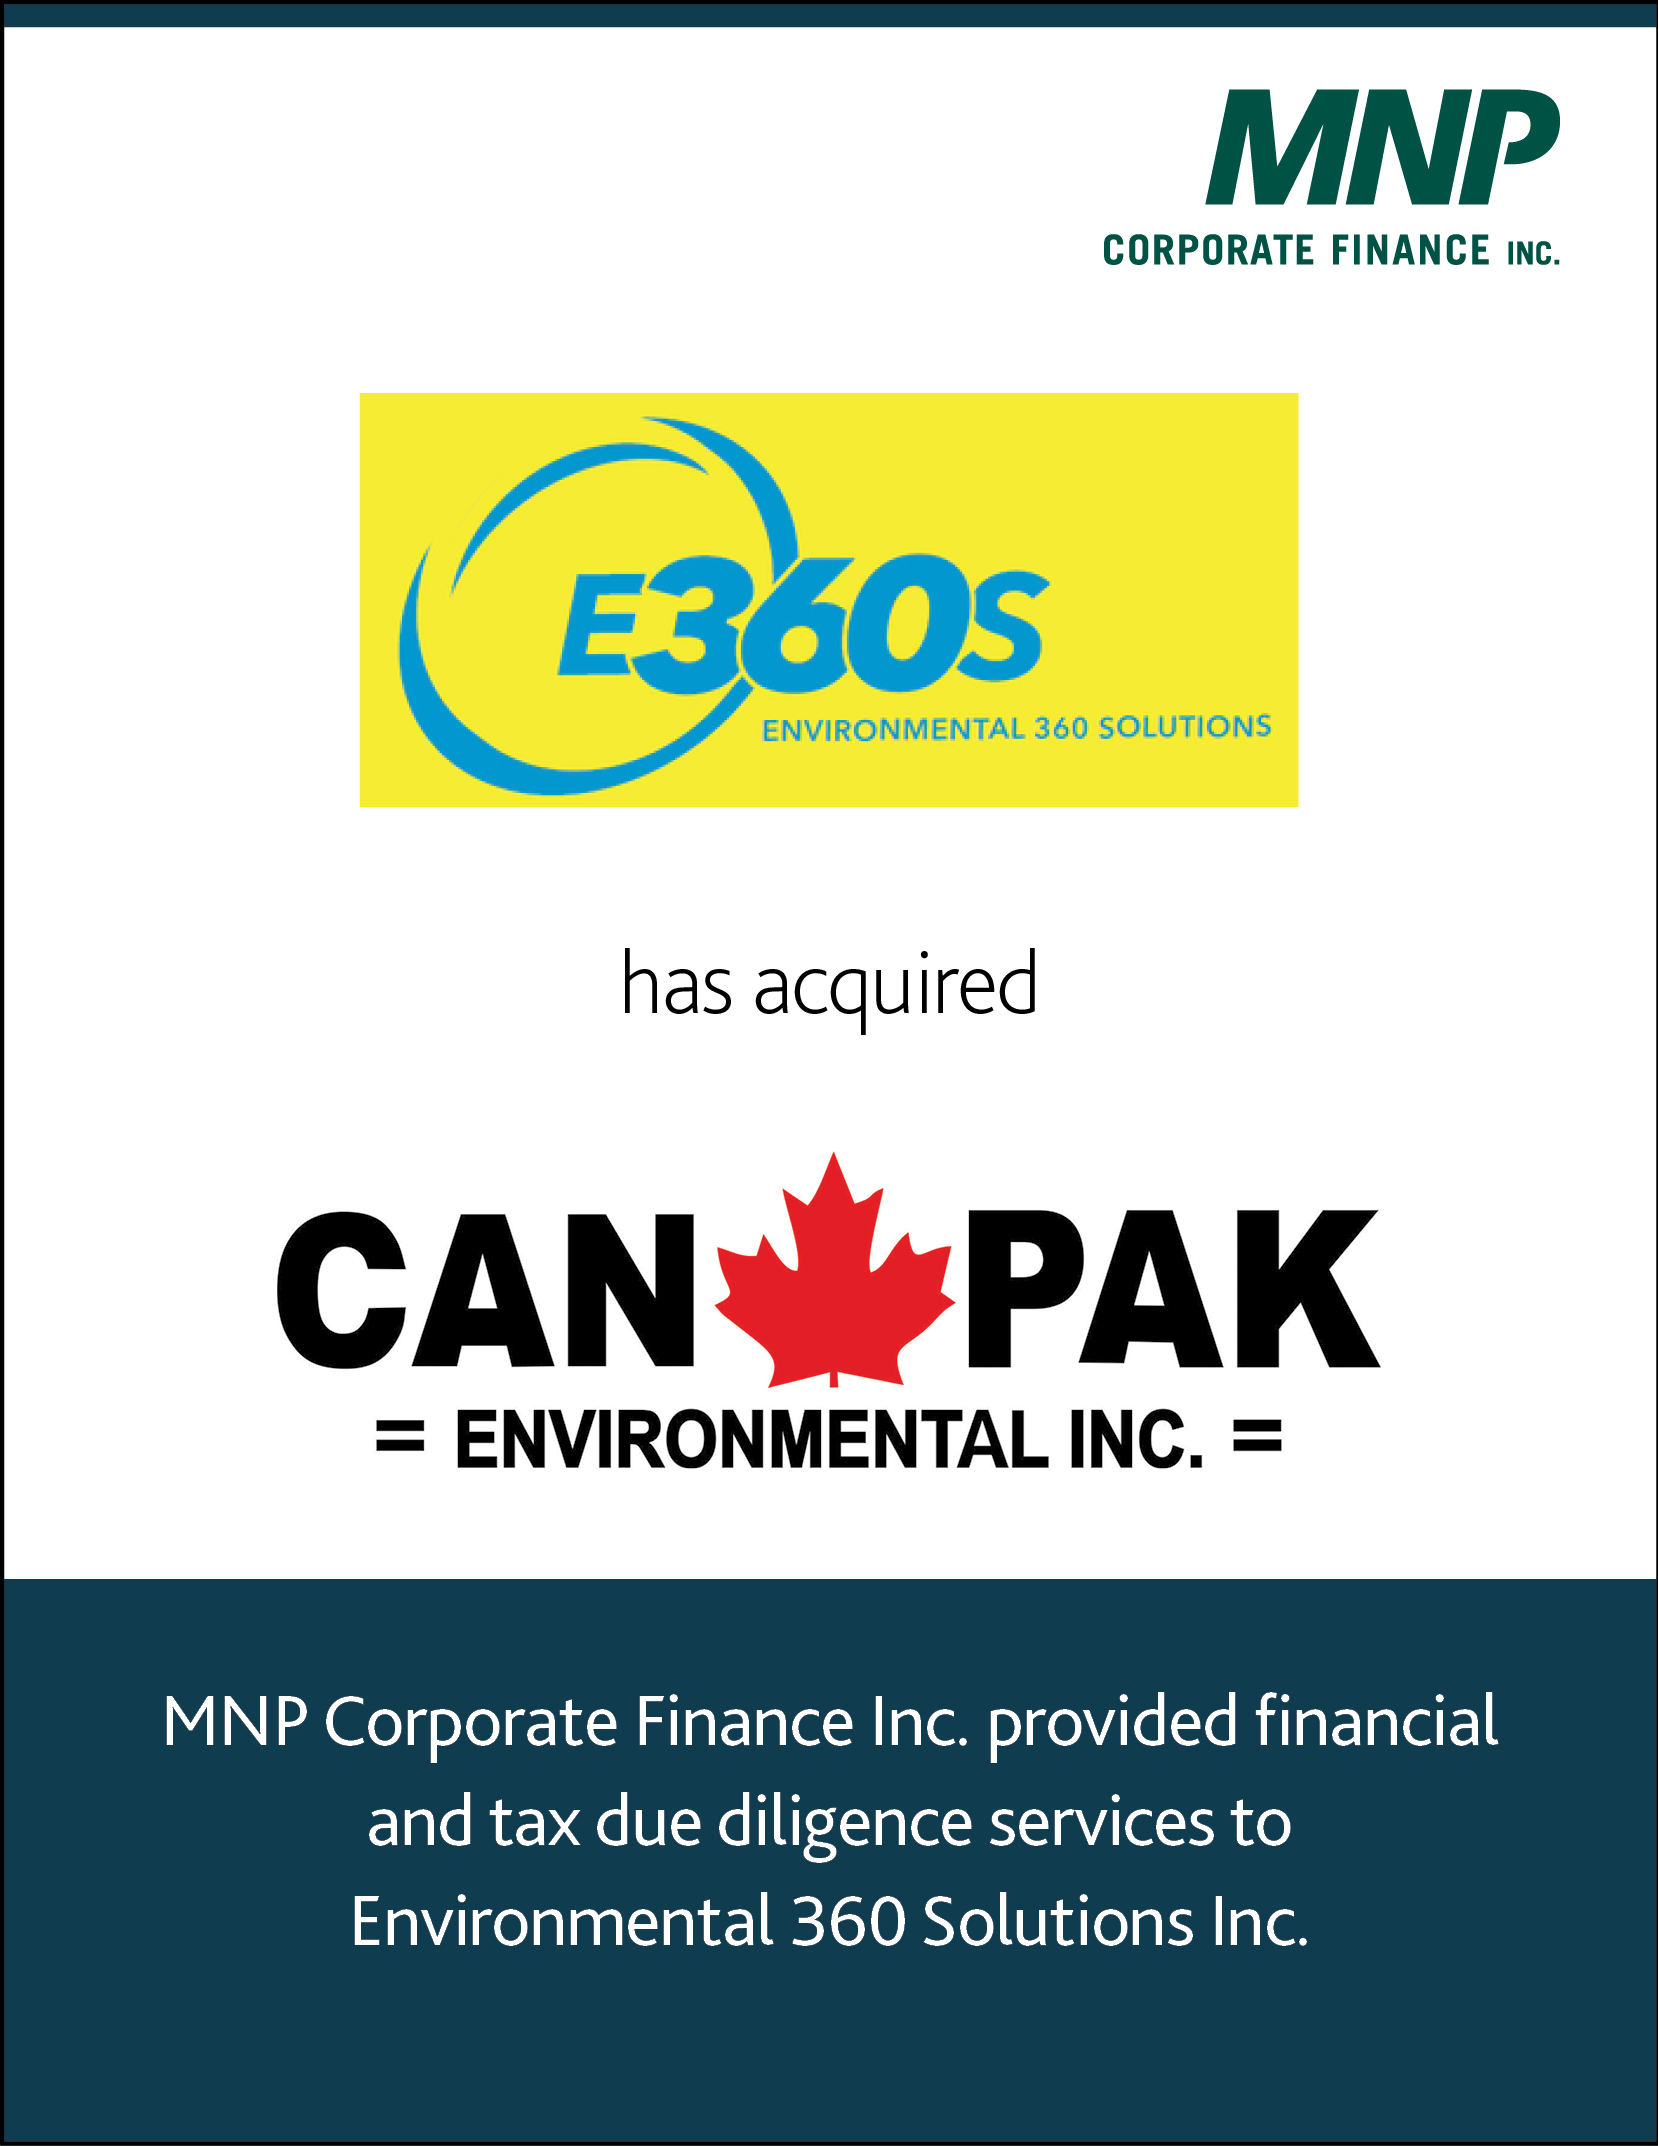 Environmental 360 Solutions Inc. has acquired Can Pak Environmental Inc.